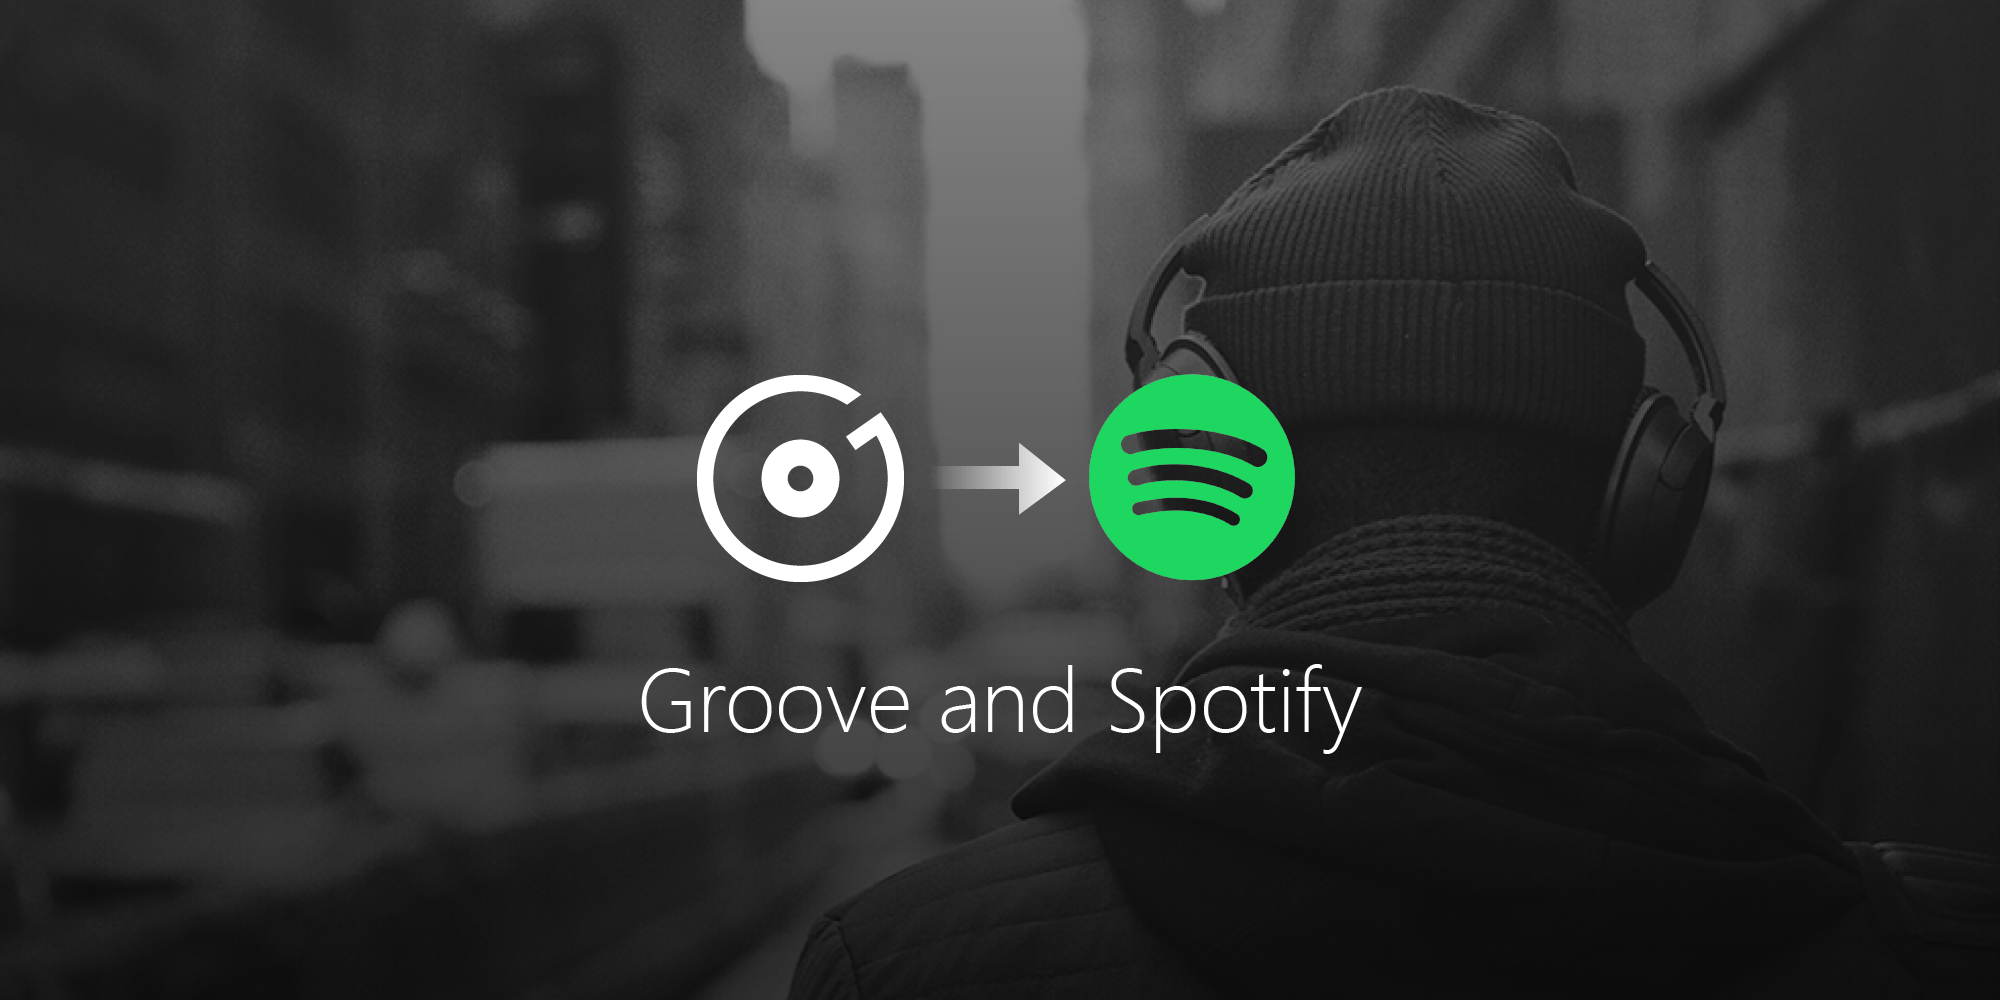 Microsoft getting out of the music biz, moving Groove subs to Spotify